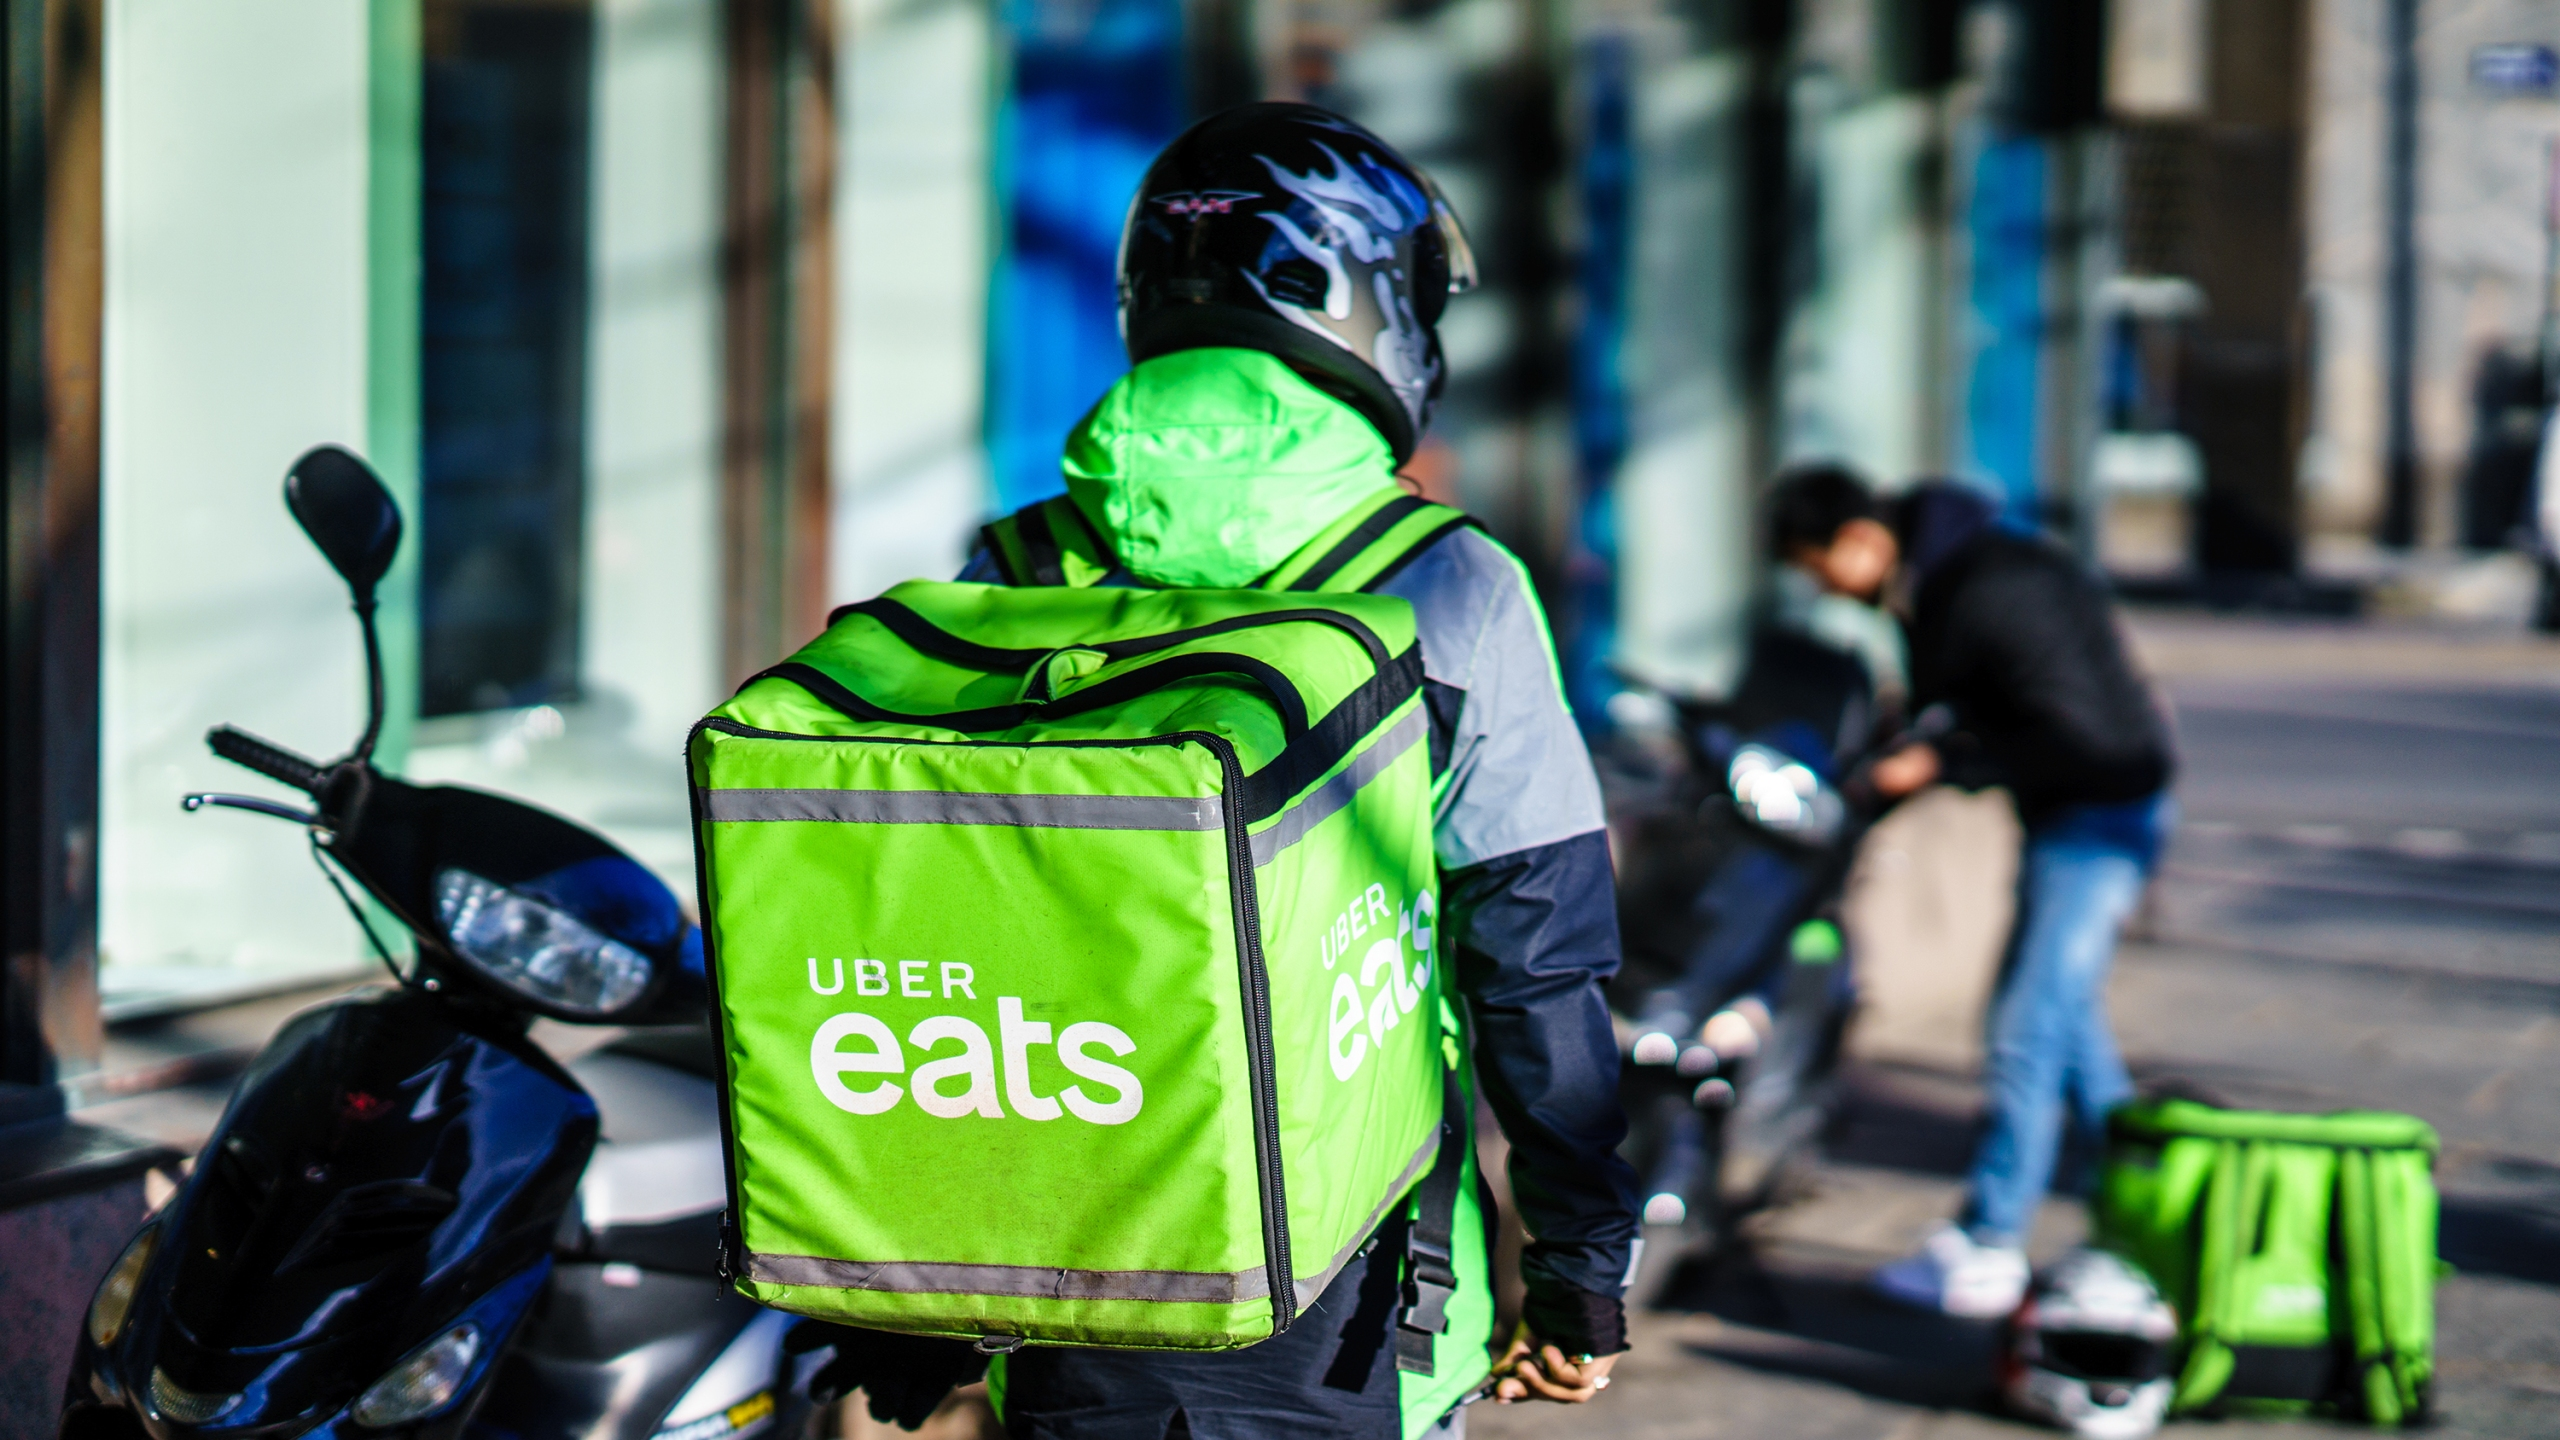 Less than a month after Uber tried and failed to buy GrubHub, the ride-hailing company has won a different deal to bolster its food delivery business. (Shutterstock via CNN Wire)